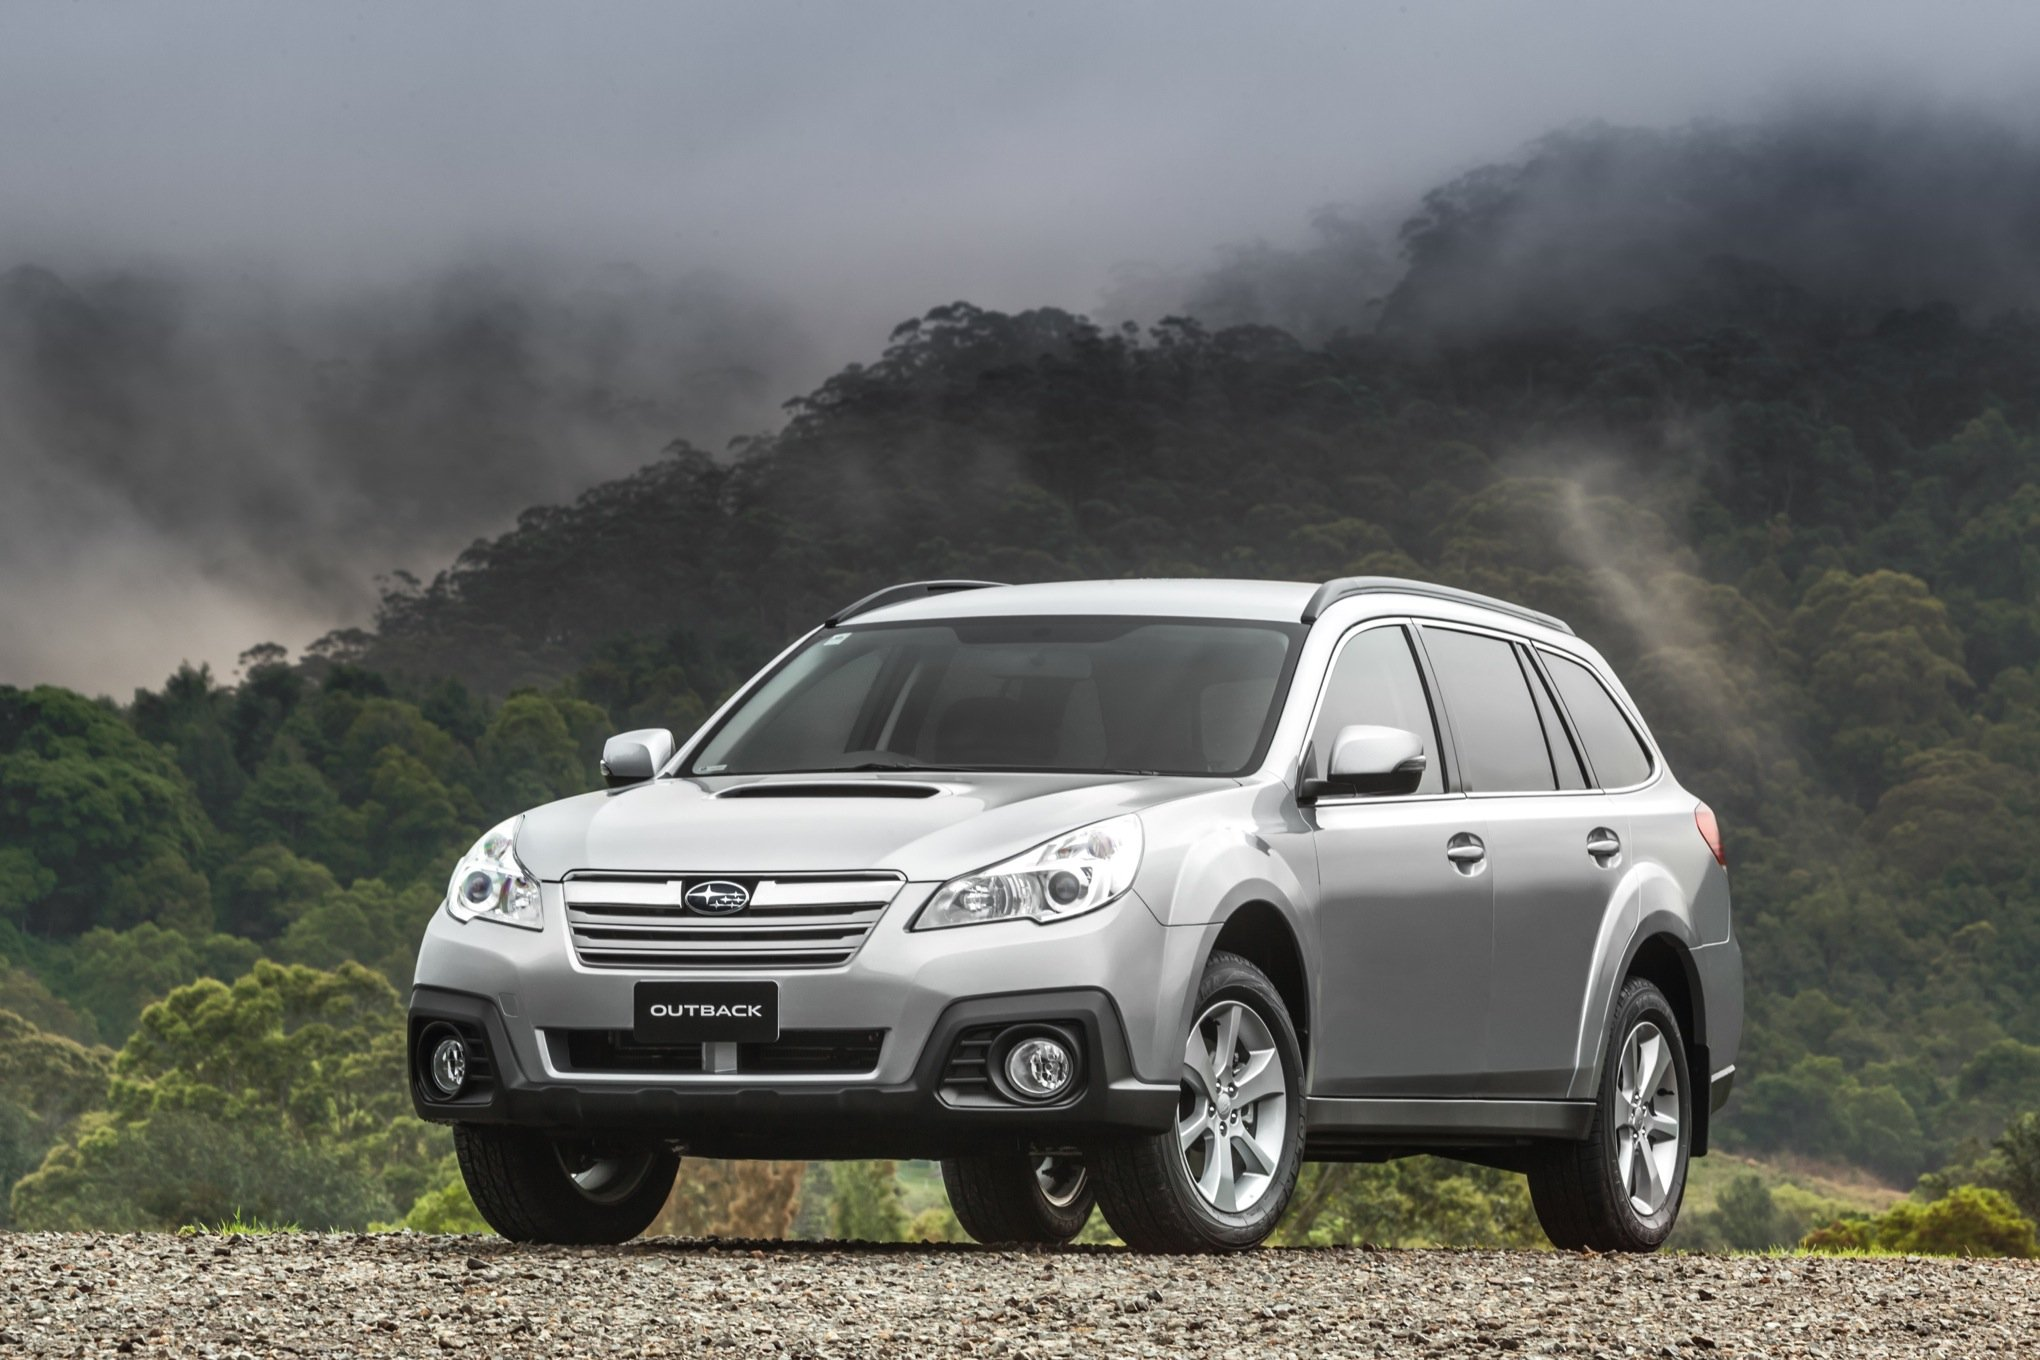 subaru outback diesel automatic review photos caradvice. Black Bedroom Furniture Sets. Home Design Ideas